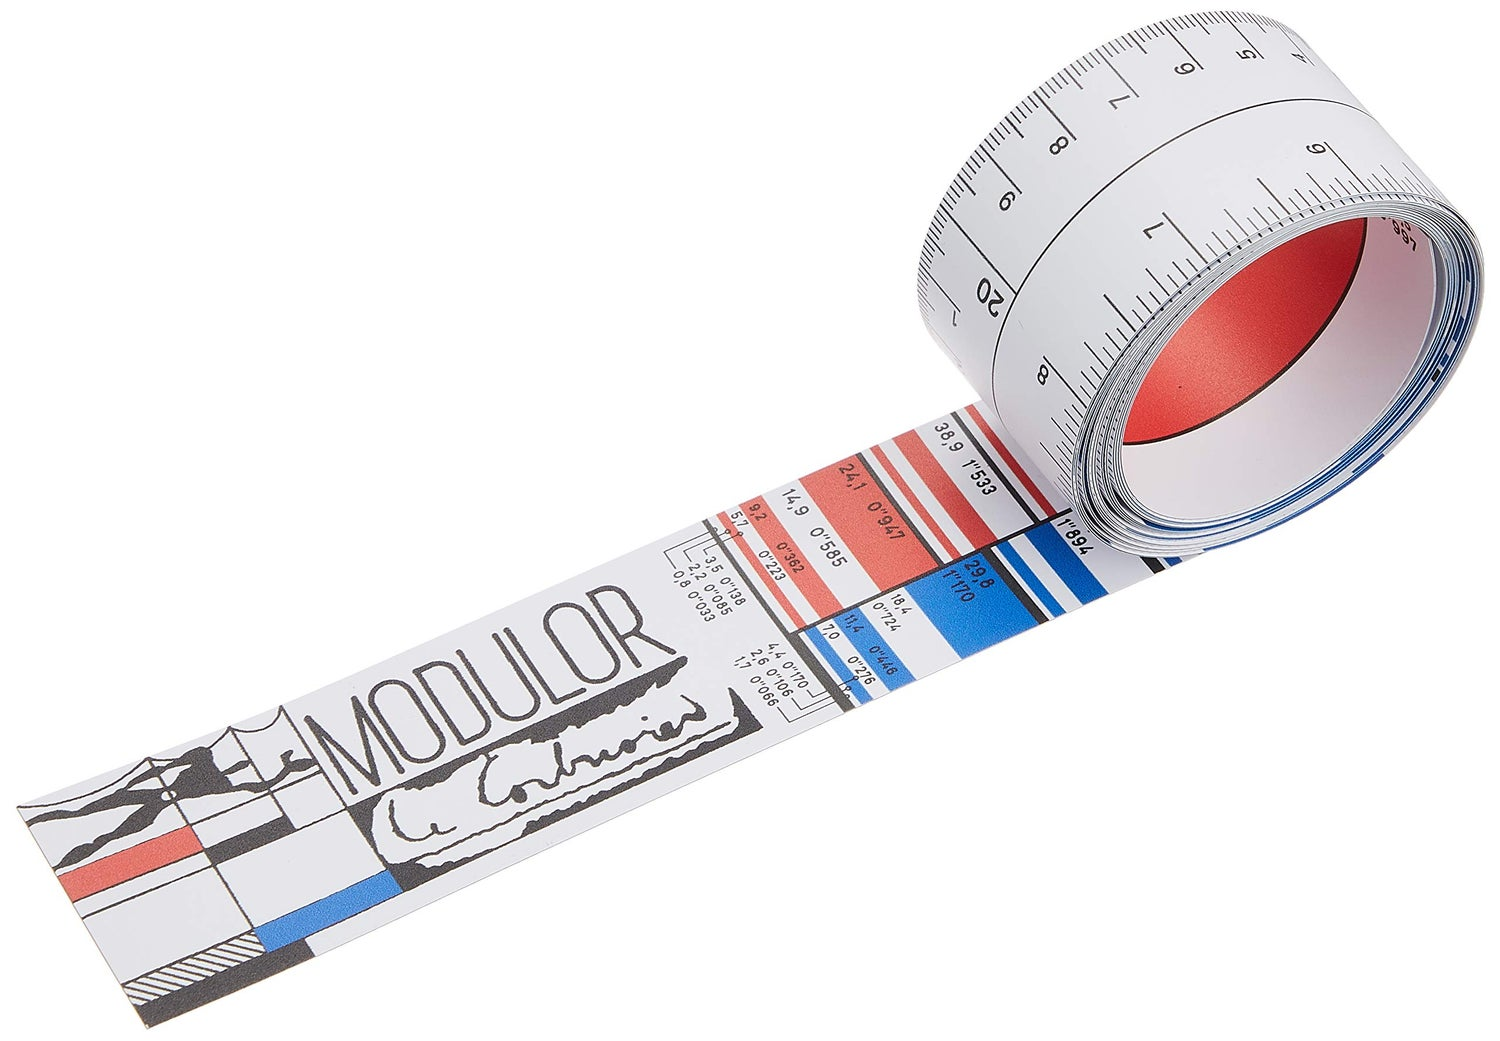 Image of Le Corbusier Modulor Rule: An Innovative Tape Measure from the Master of Modern Architecture